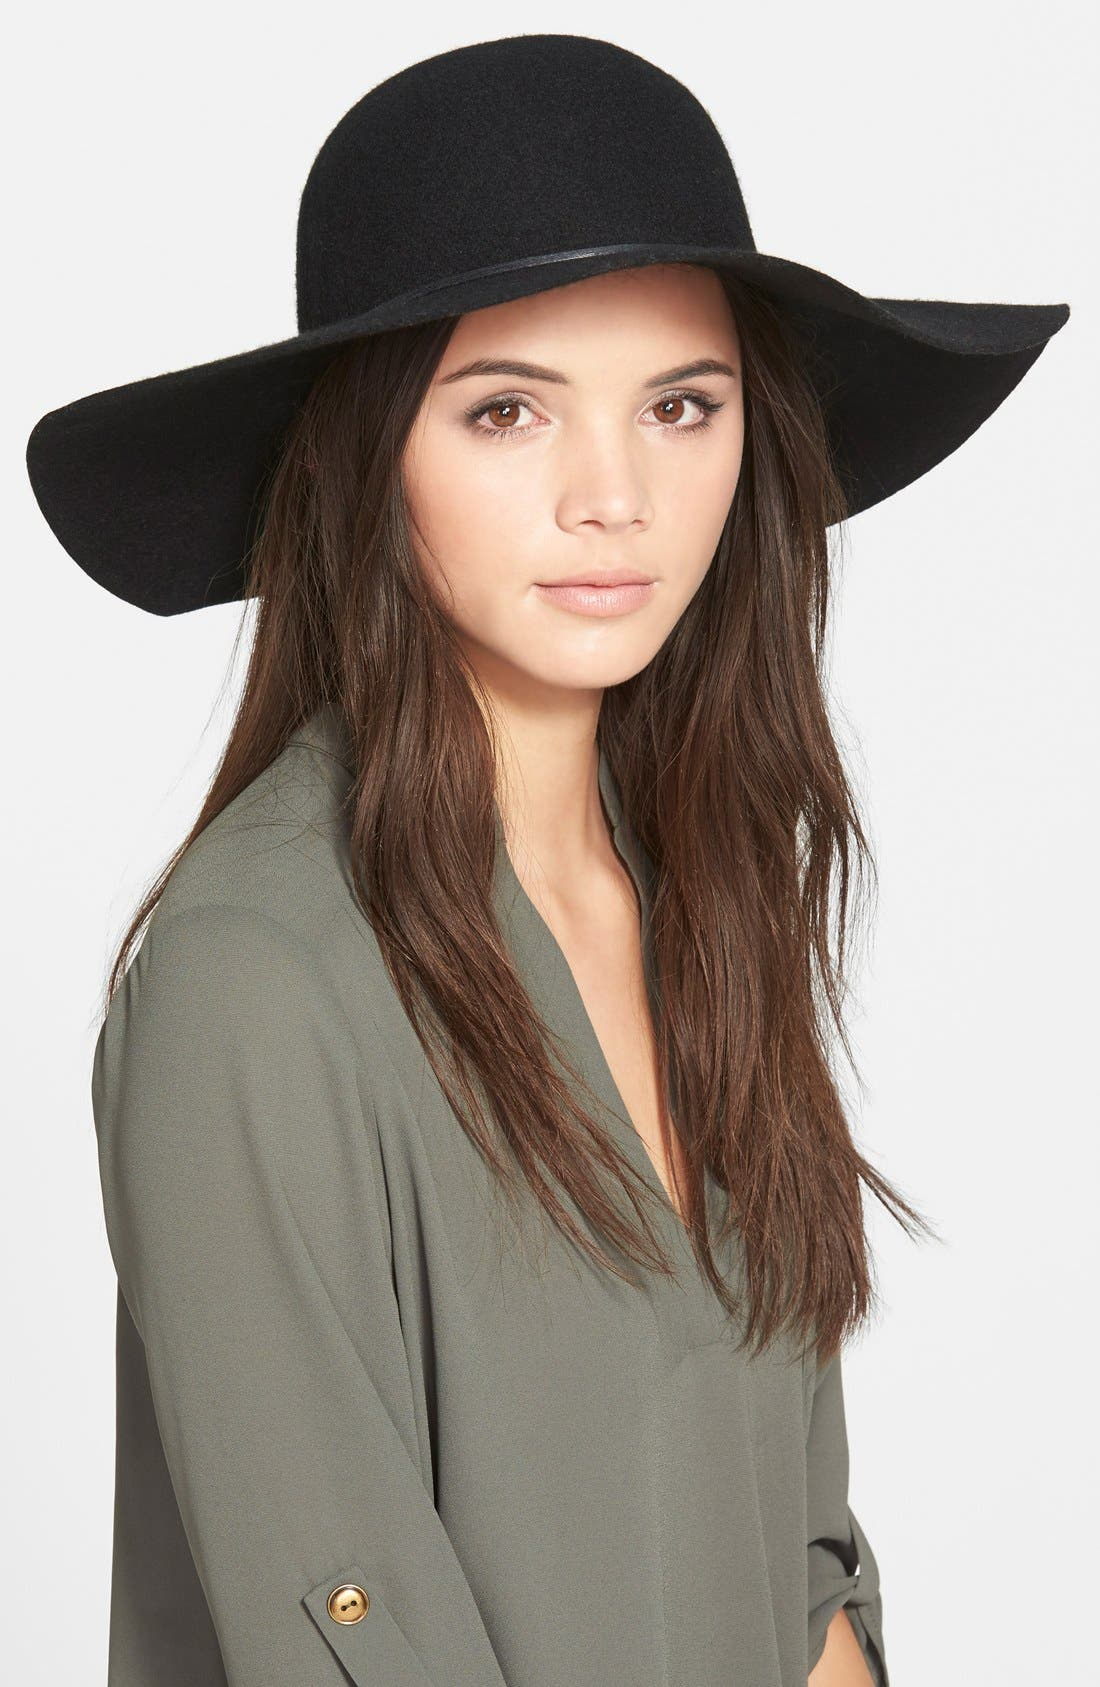 Rope Trim Floppy Felt Hat,                             Main thumbnail 1, color,                             001